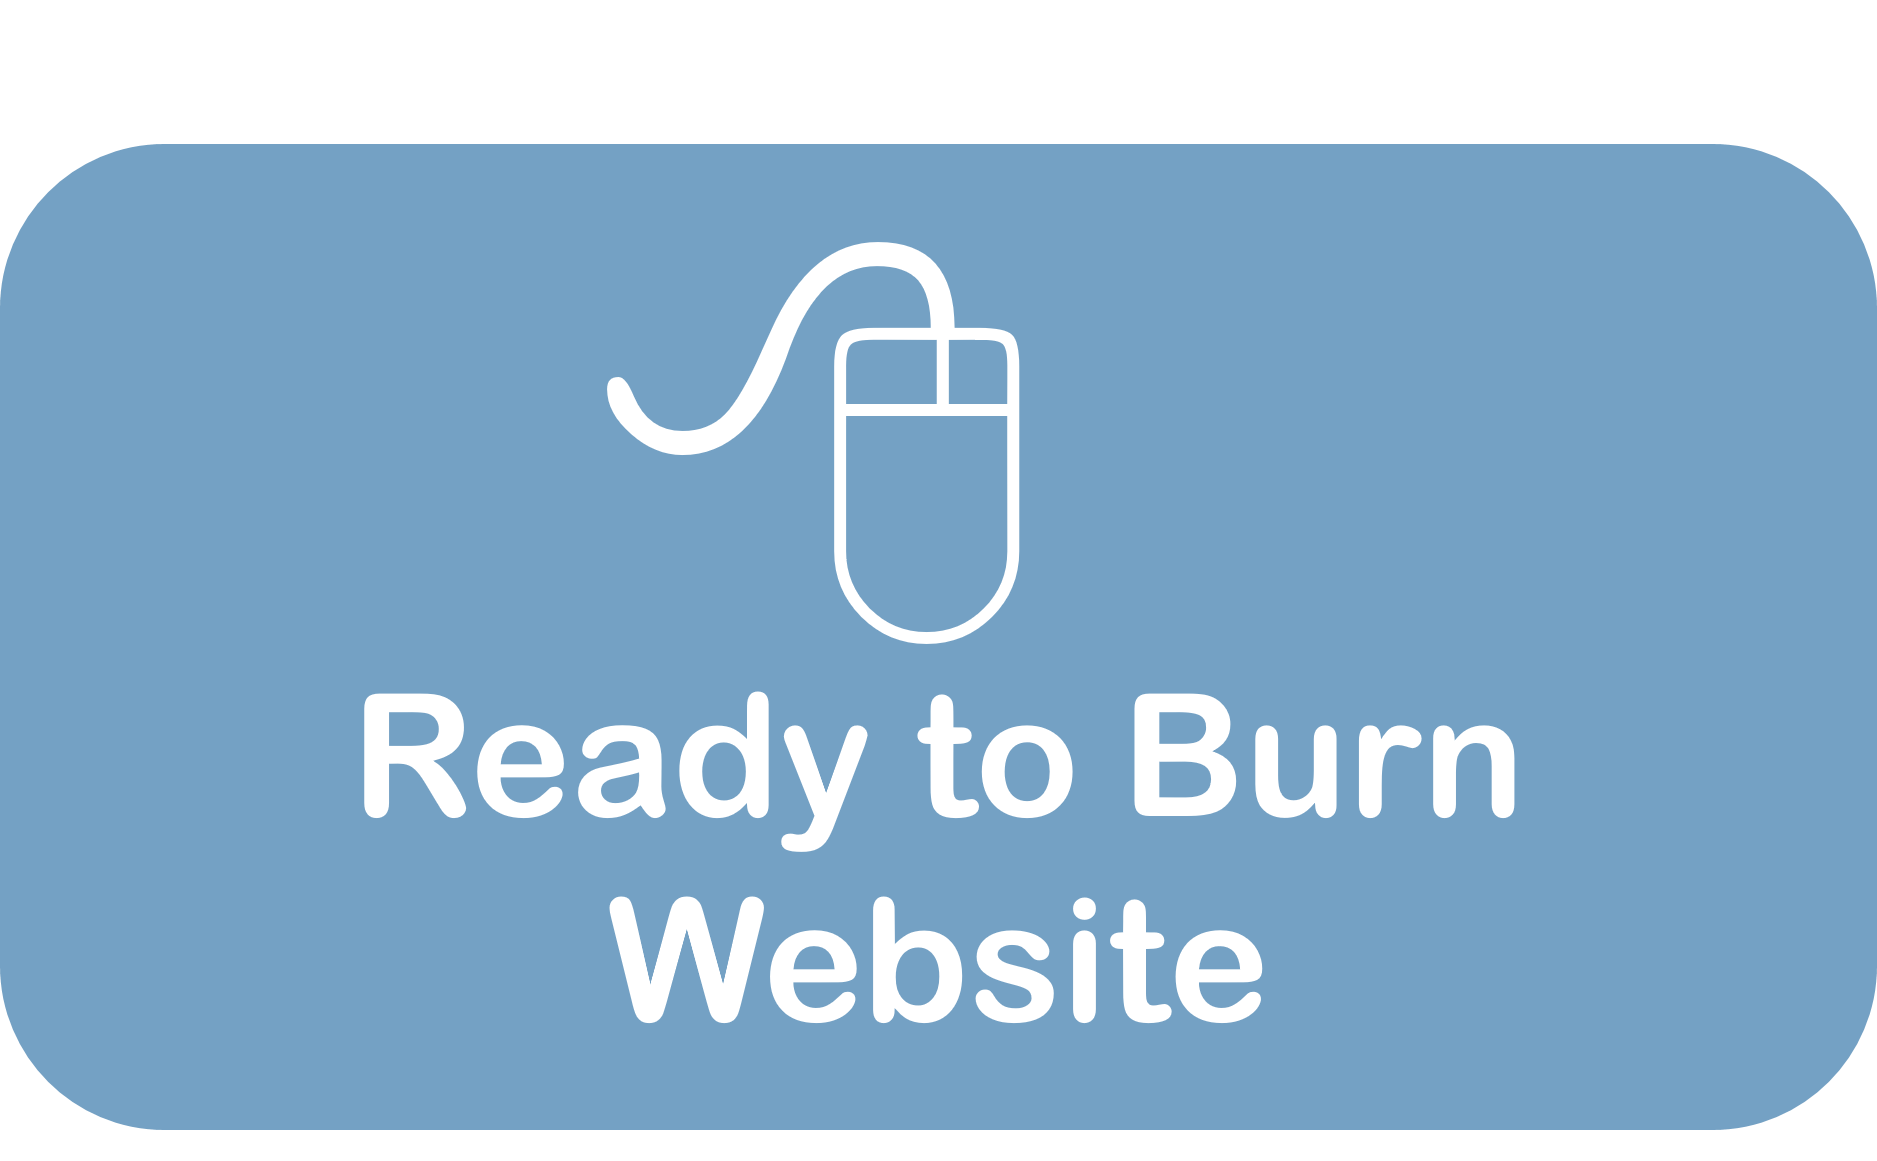 Ready to Burn Website